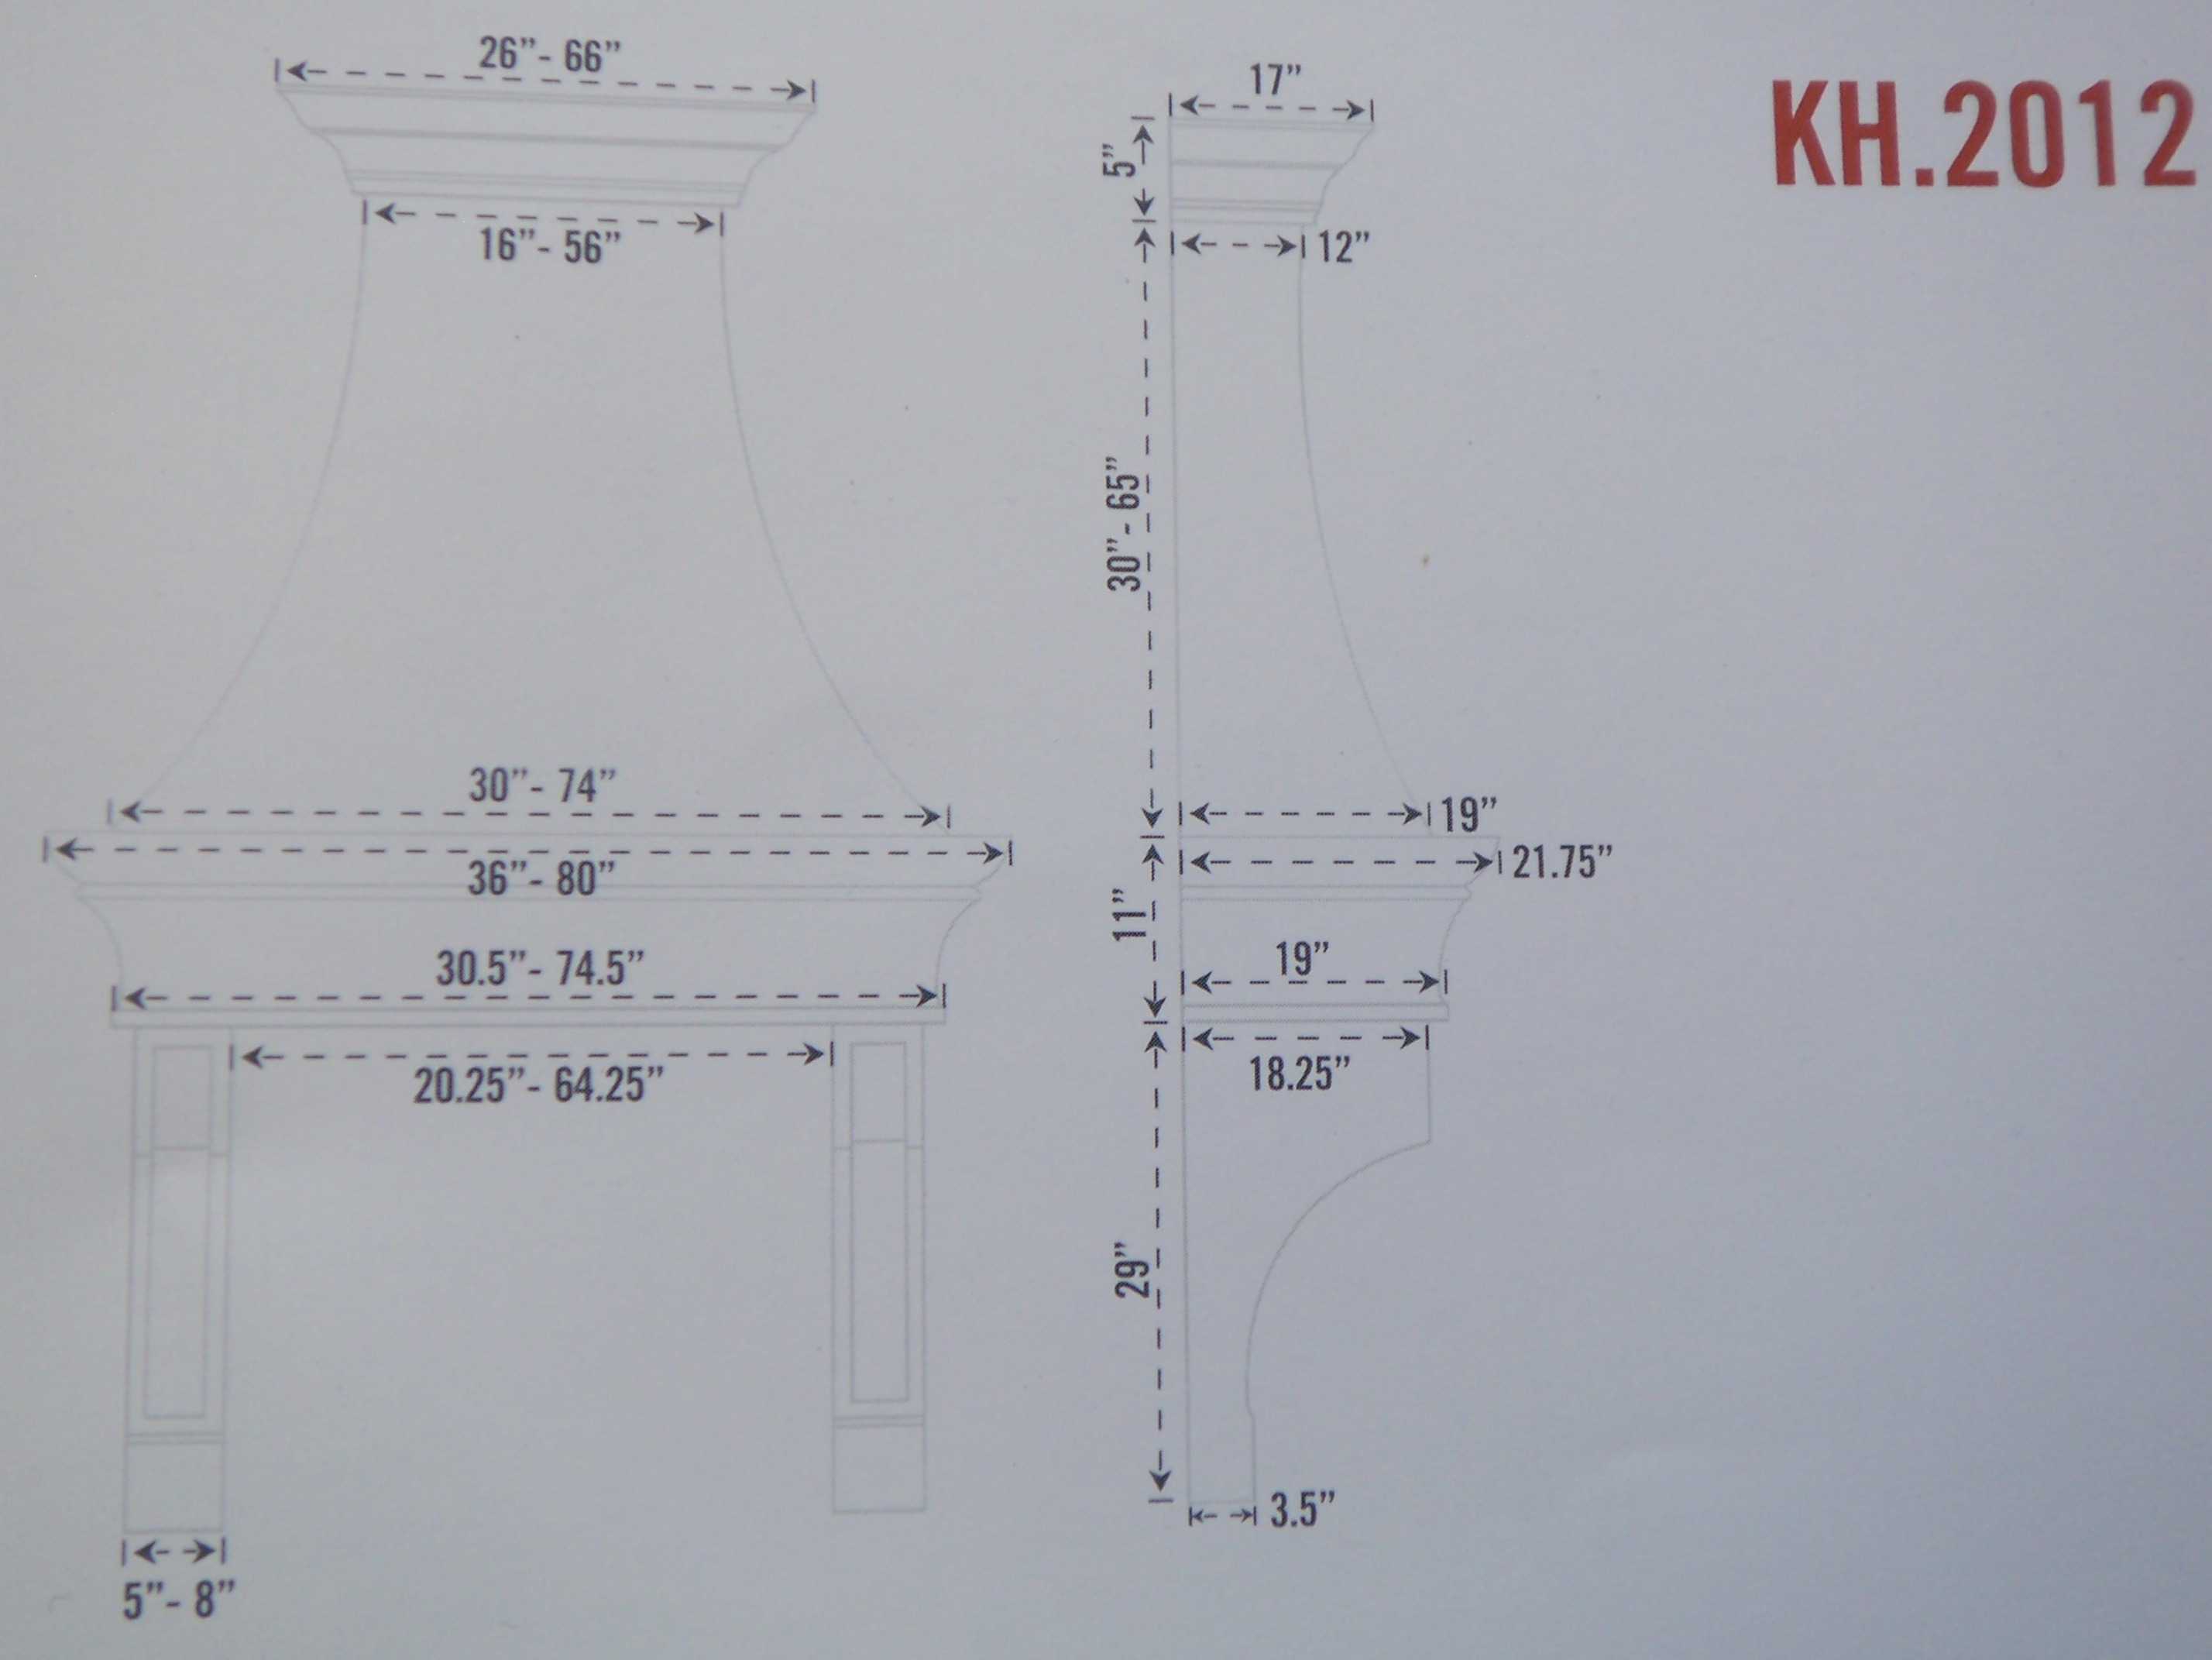 City Plastering Kitchen Hoods Models Kh2012